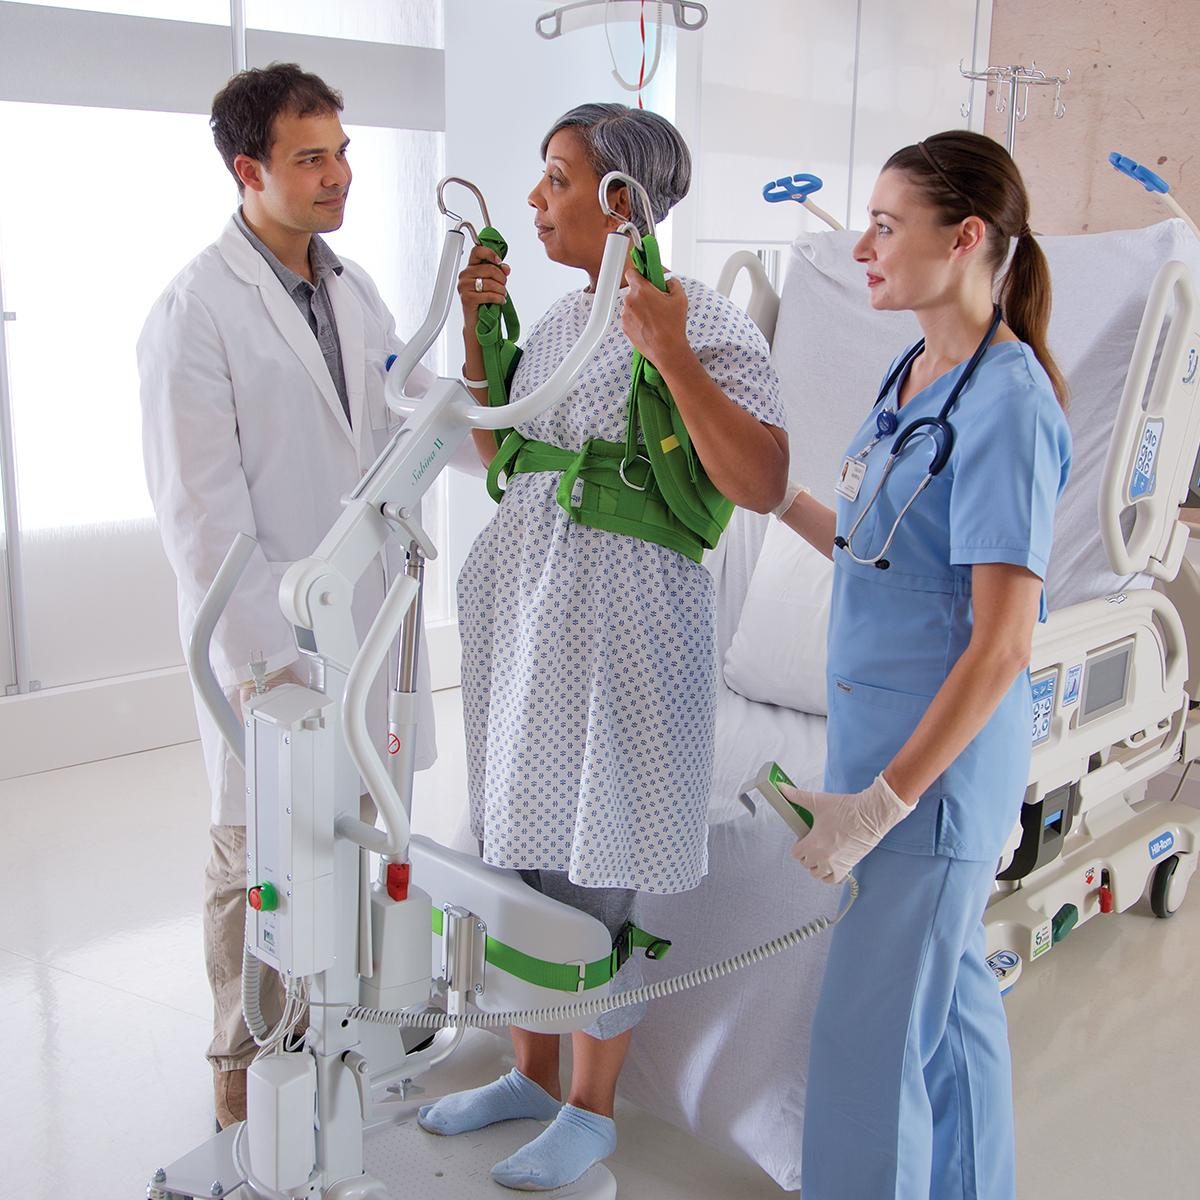 Two clinicians help an older female patient stand in a hospital room using a Sabina II mobile lift